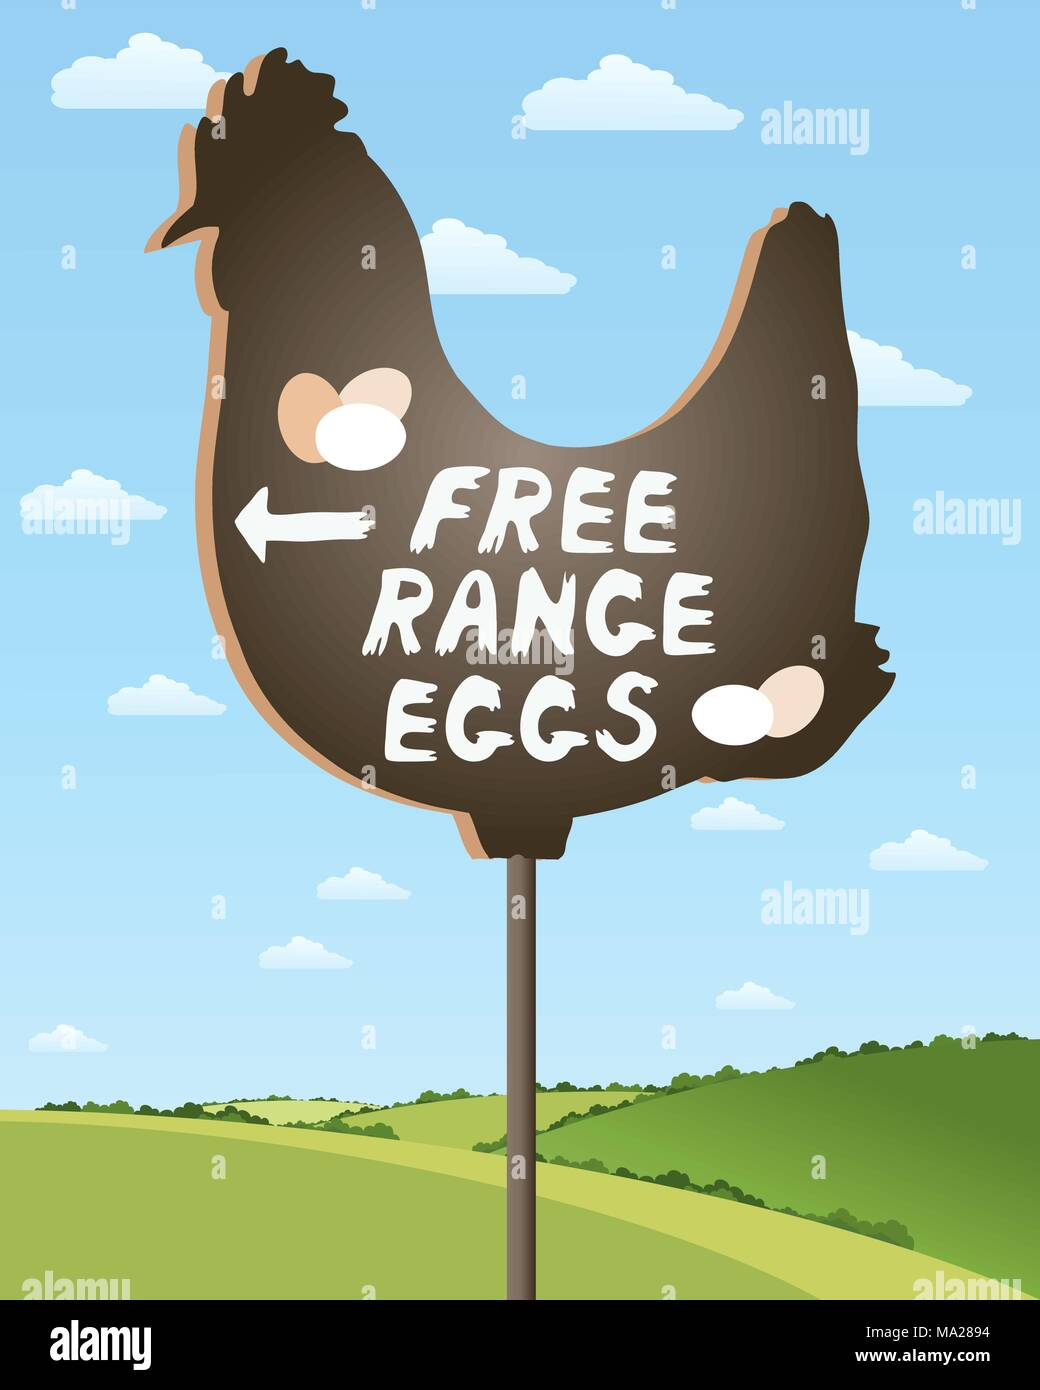 an illustration of a home made sign advertising free range eggs in beautiful countryside scenery under a summer sky - Stock Vector